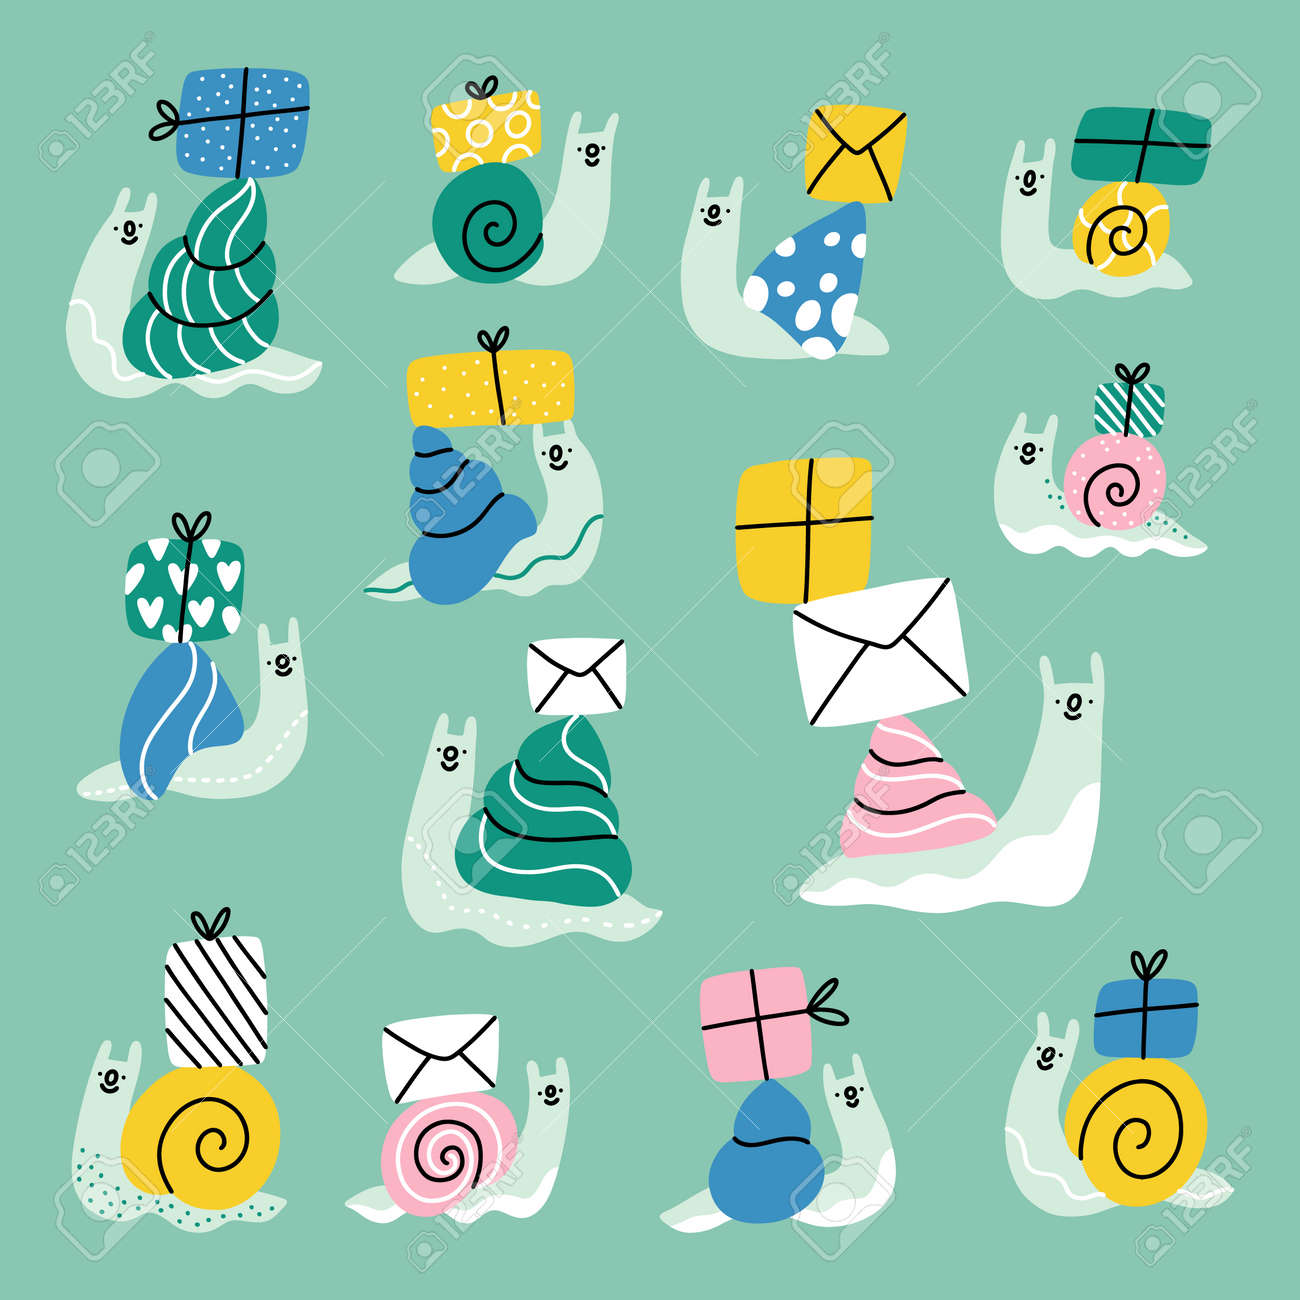 Cute cartoon snails with mail envelopes and present boxes, vector illustrations collection - 165916612